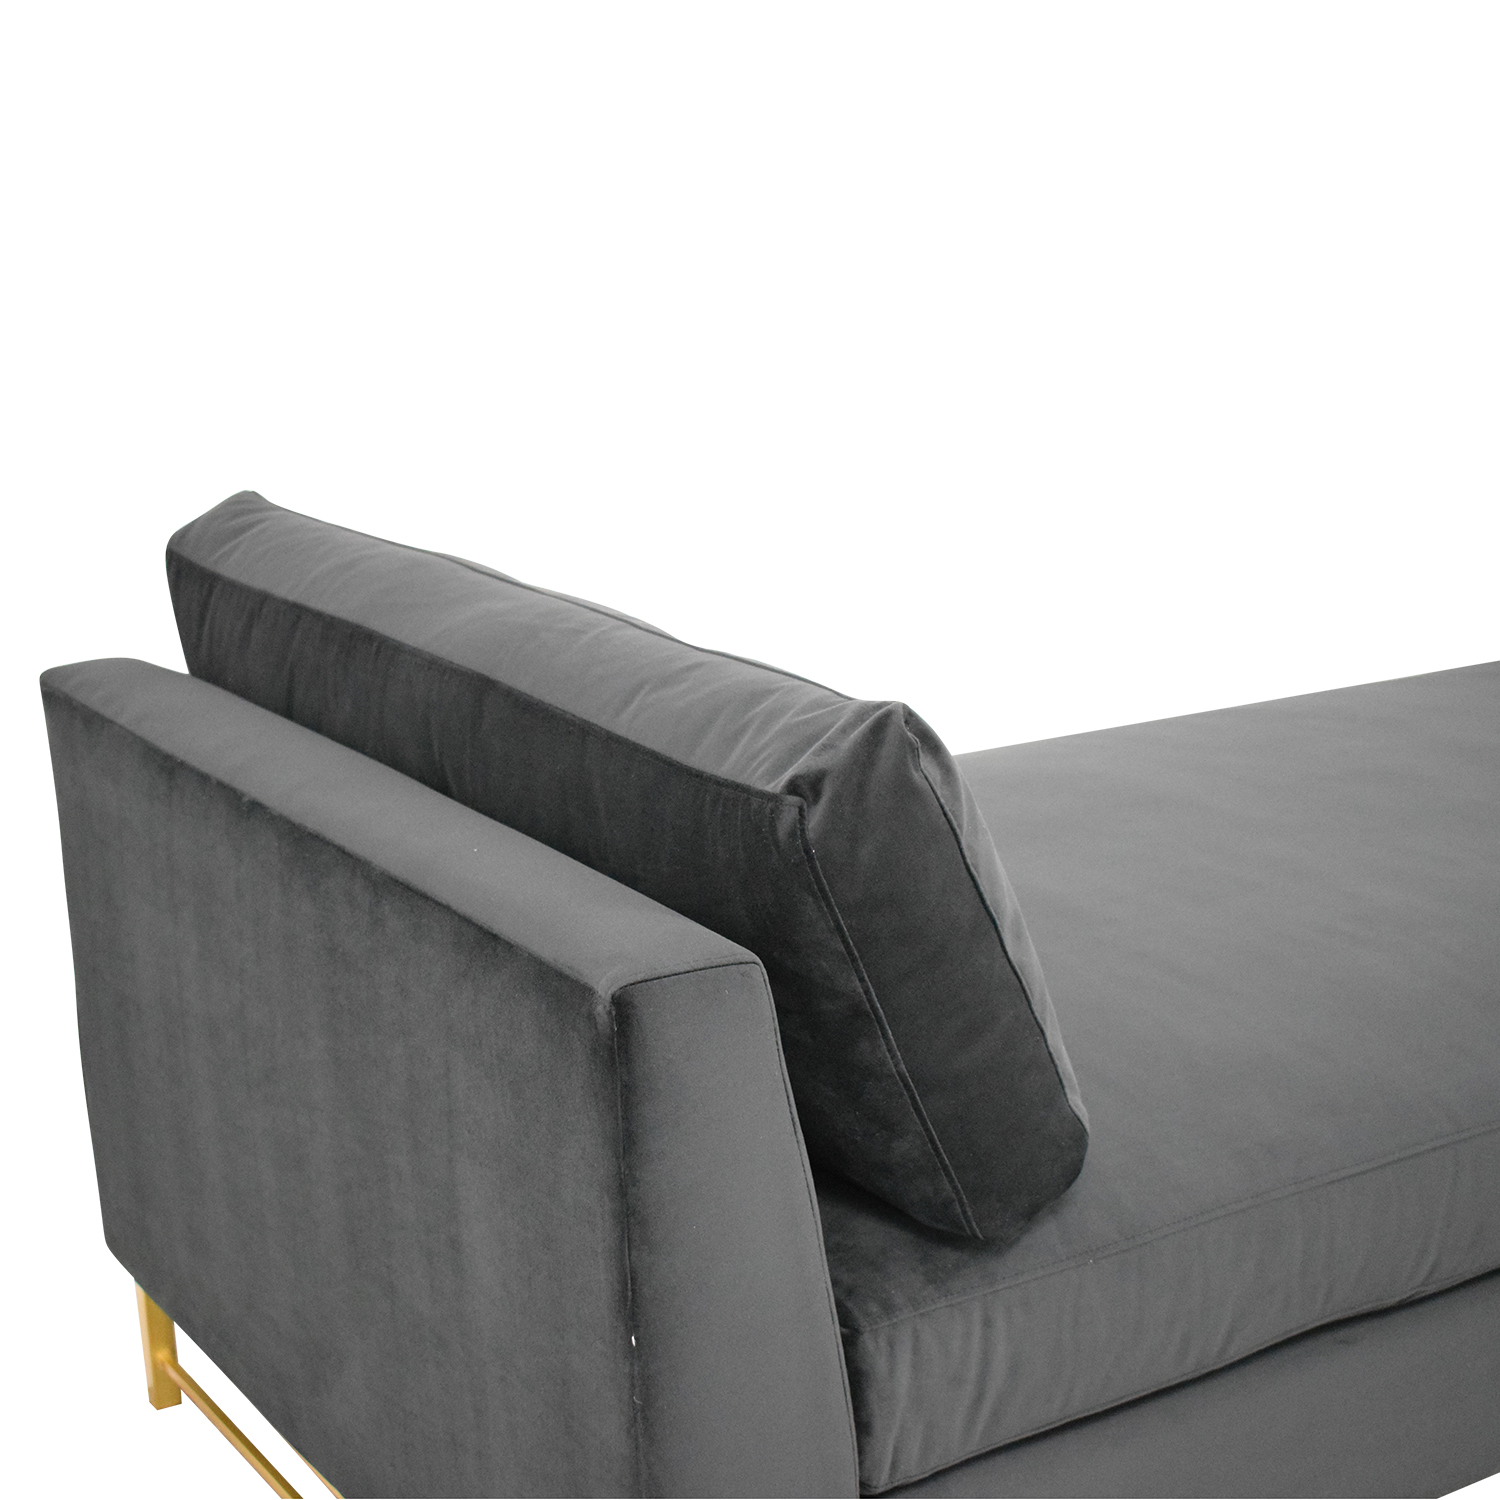 Crate & Barrel Tyson Daybed with Brass Base / Sofas